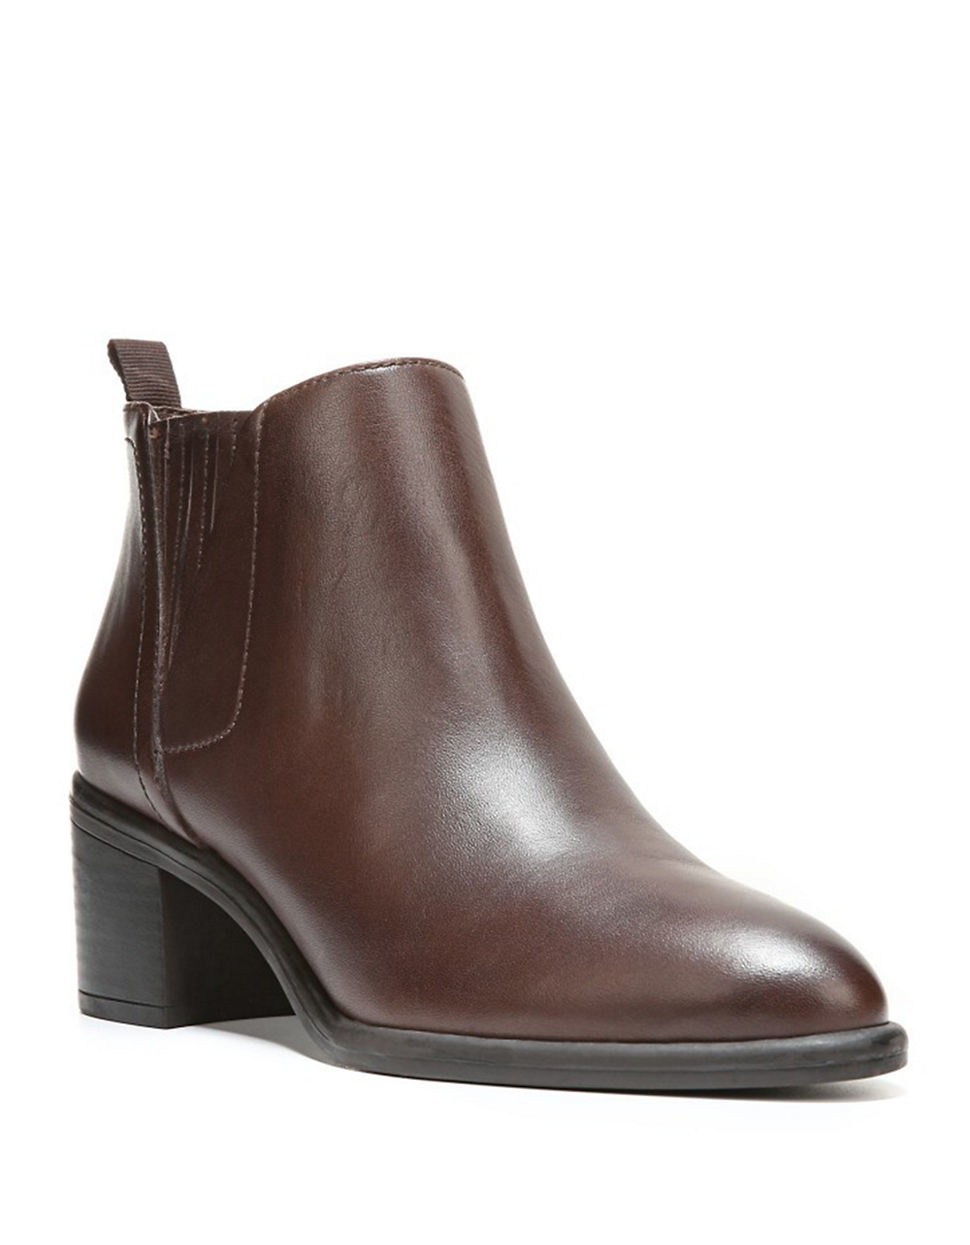 franco sarto emerge leather ankle boots in brown lyst